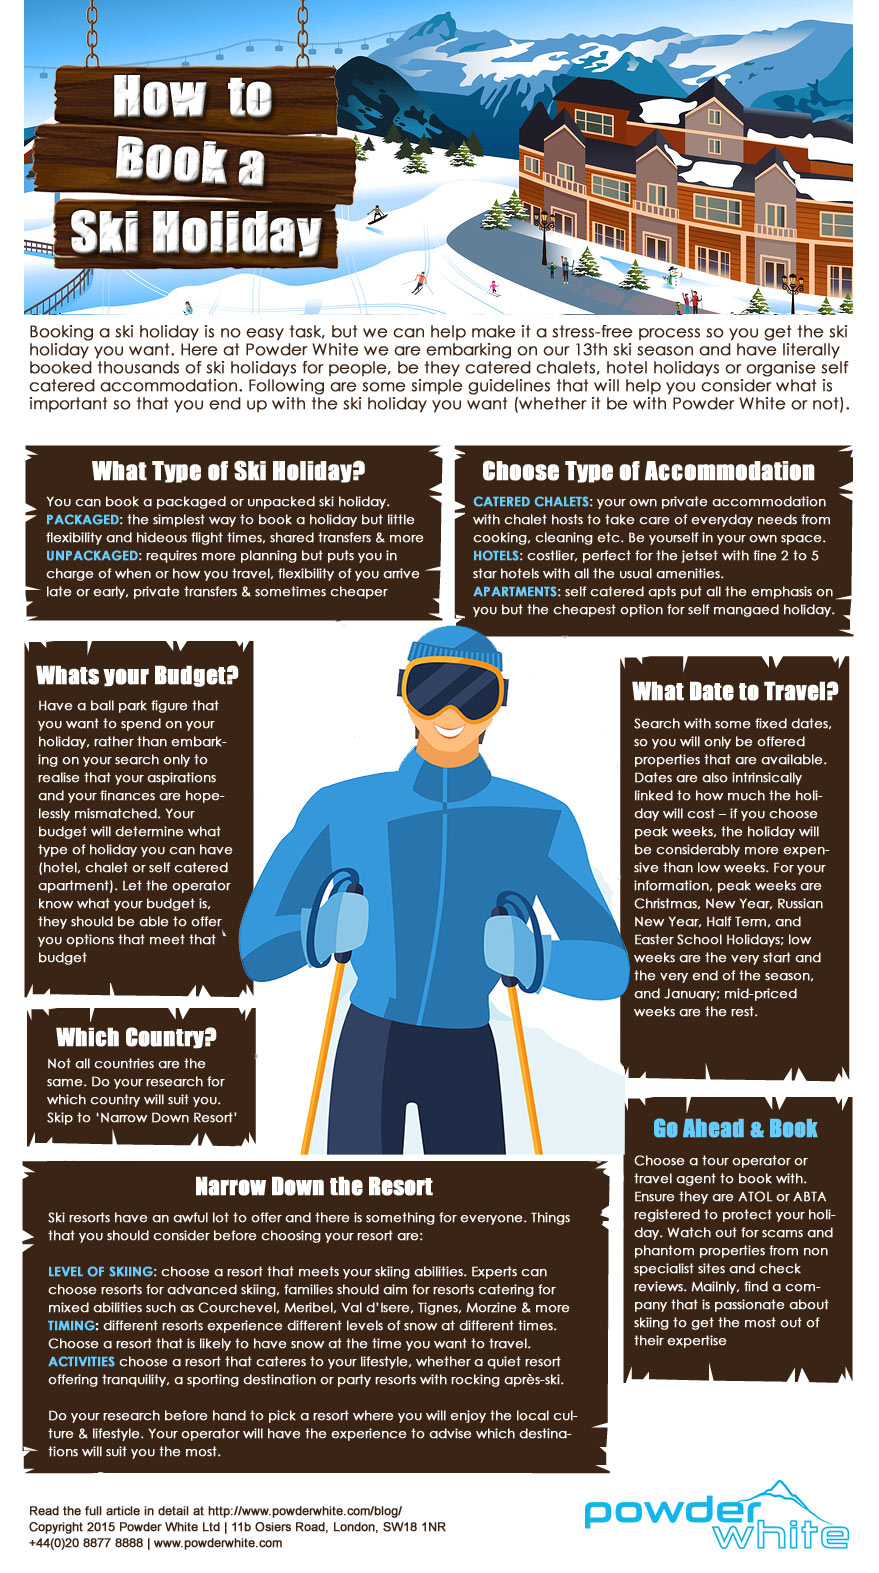 infographic - how to book a ski holiday